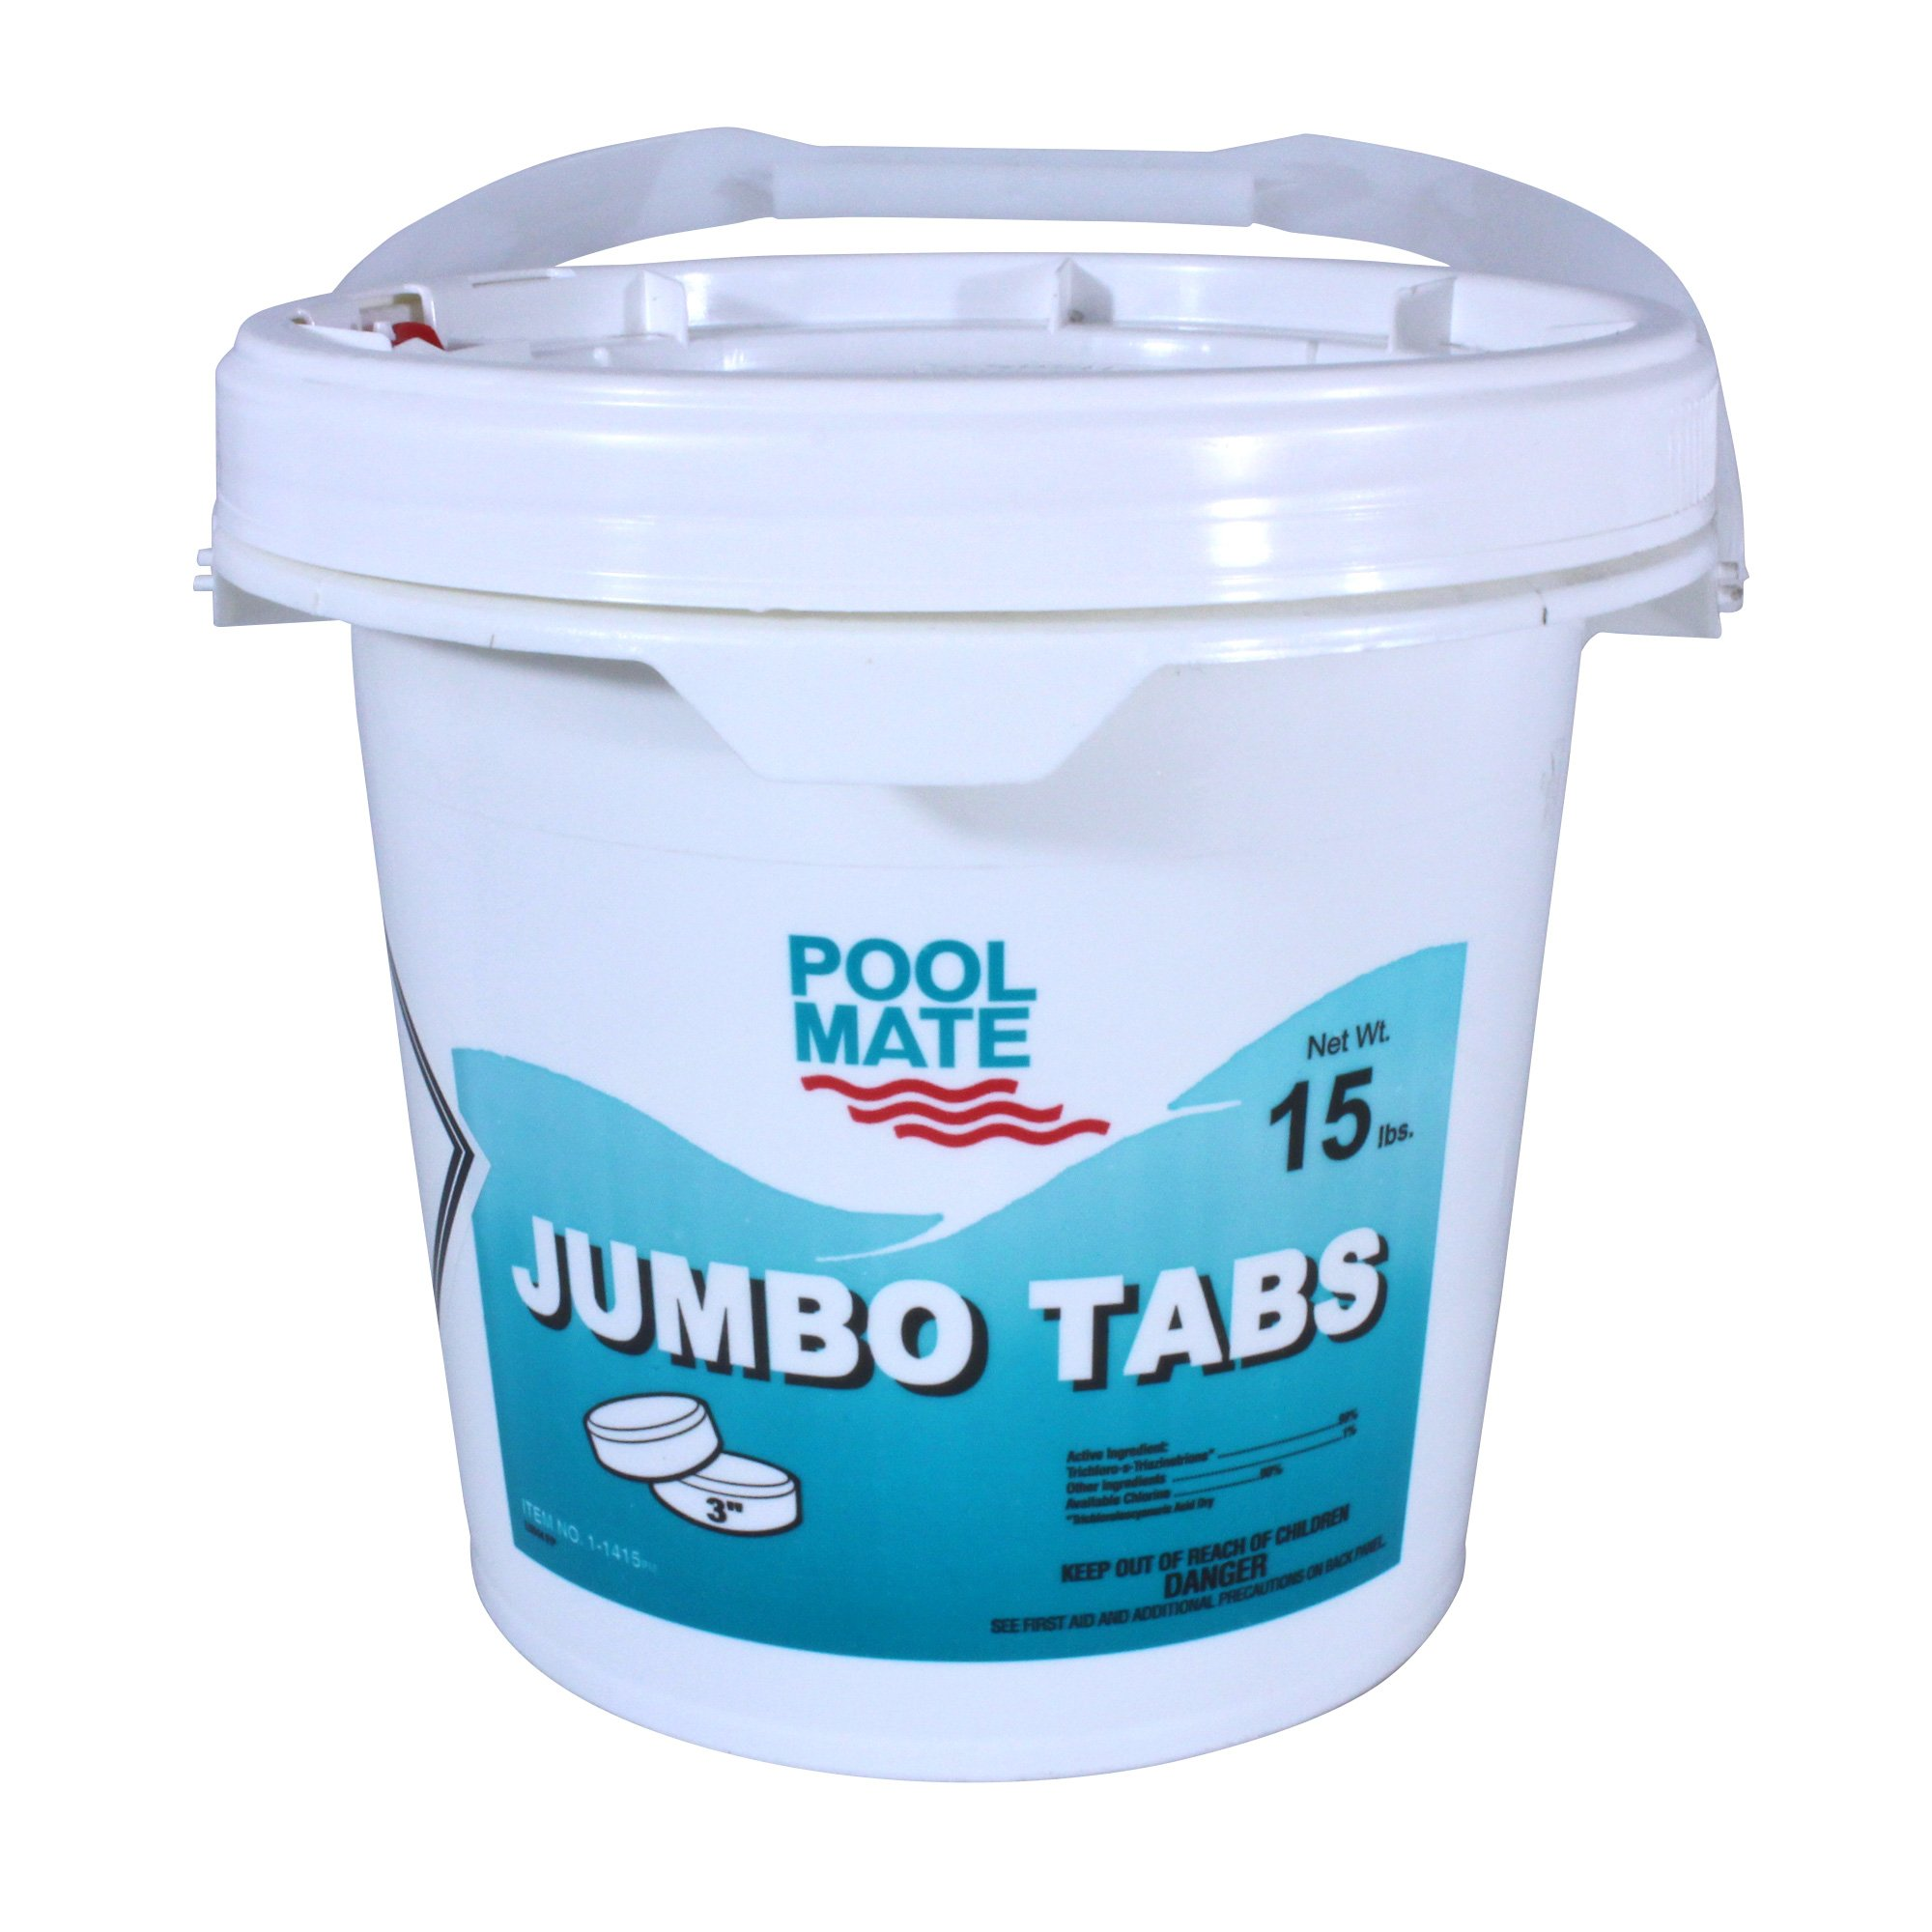 Pool Mate 1-1415 Jumbo 3-Inch Chlorine Tablets, 15-Pound by Pool Mate